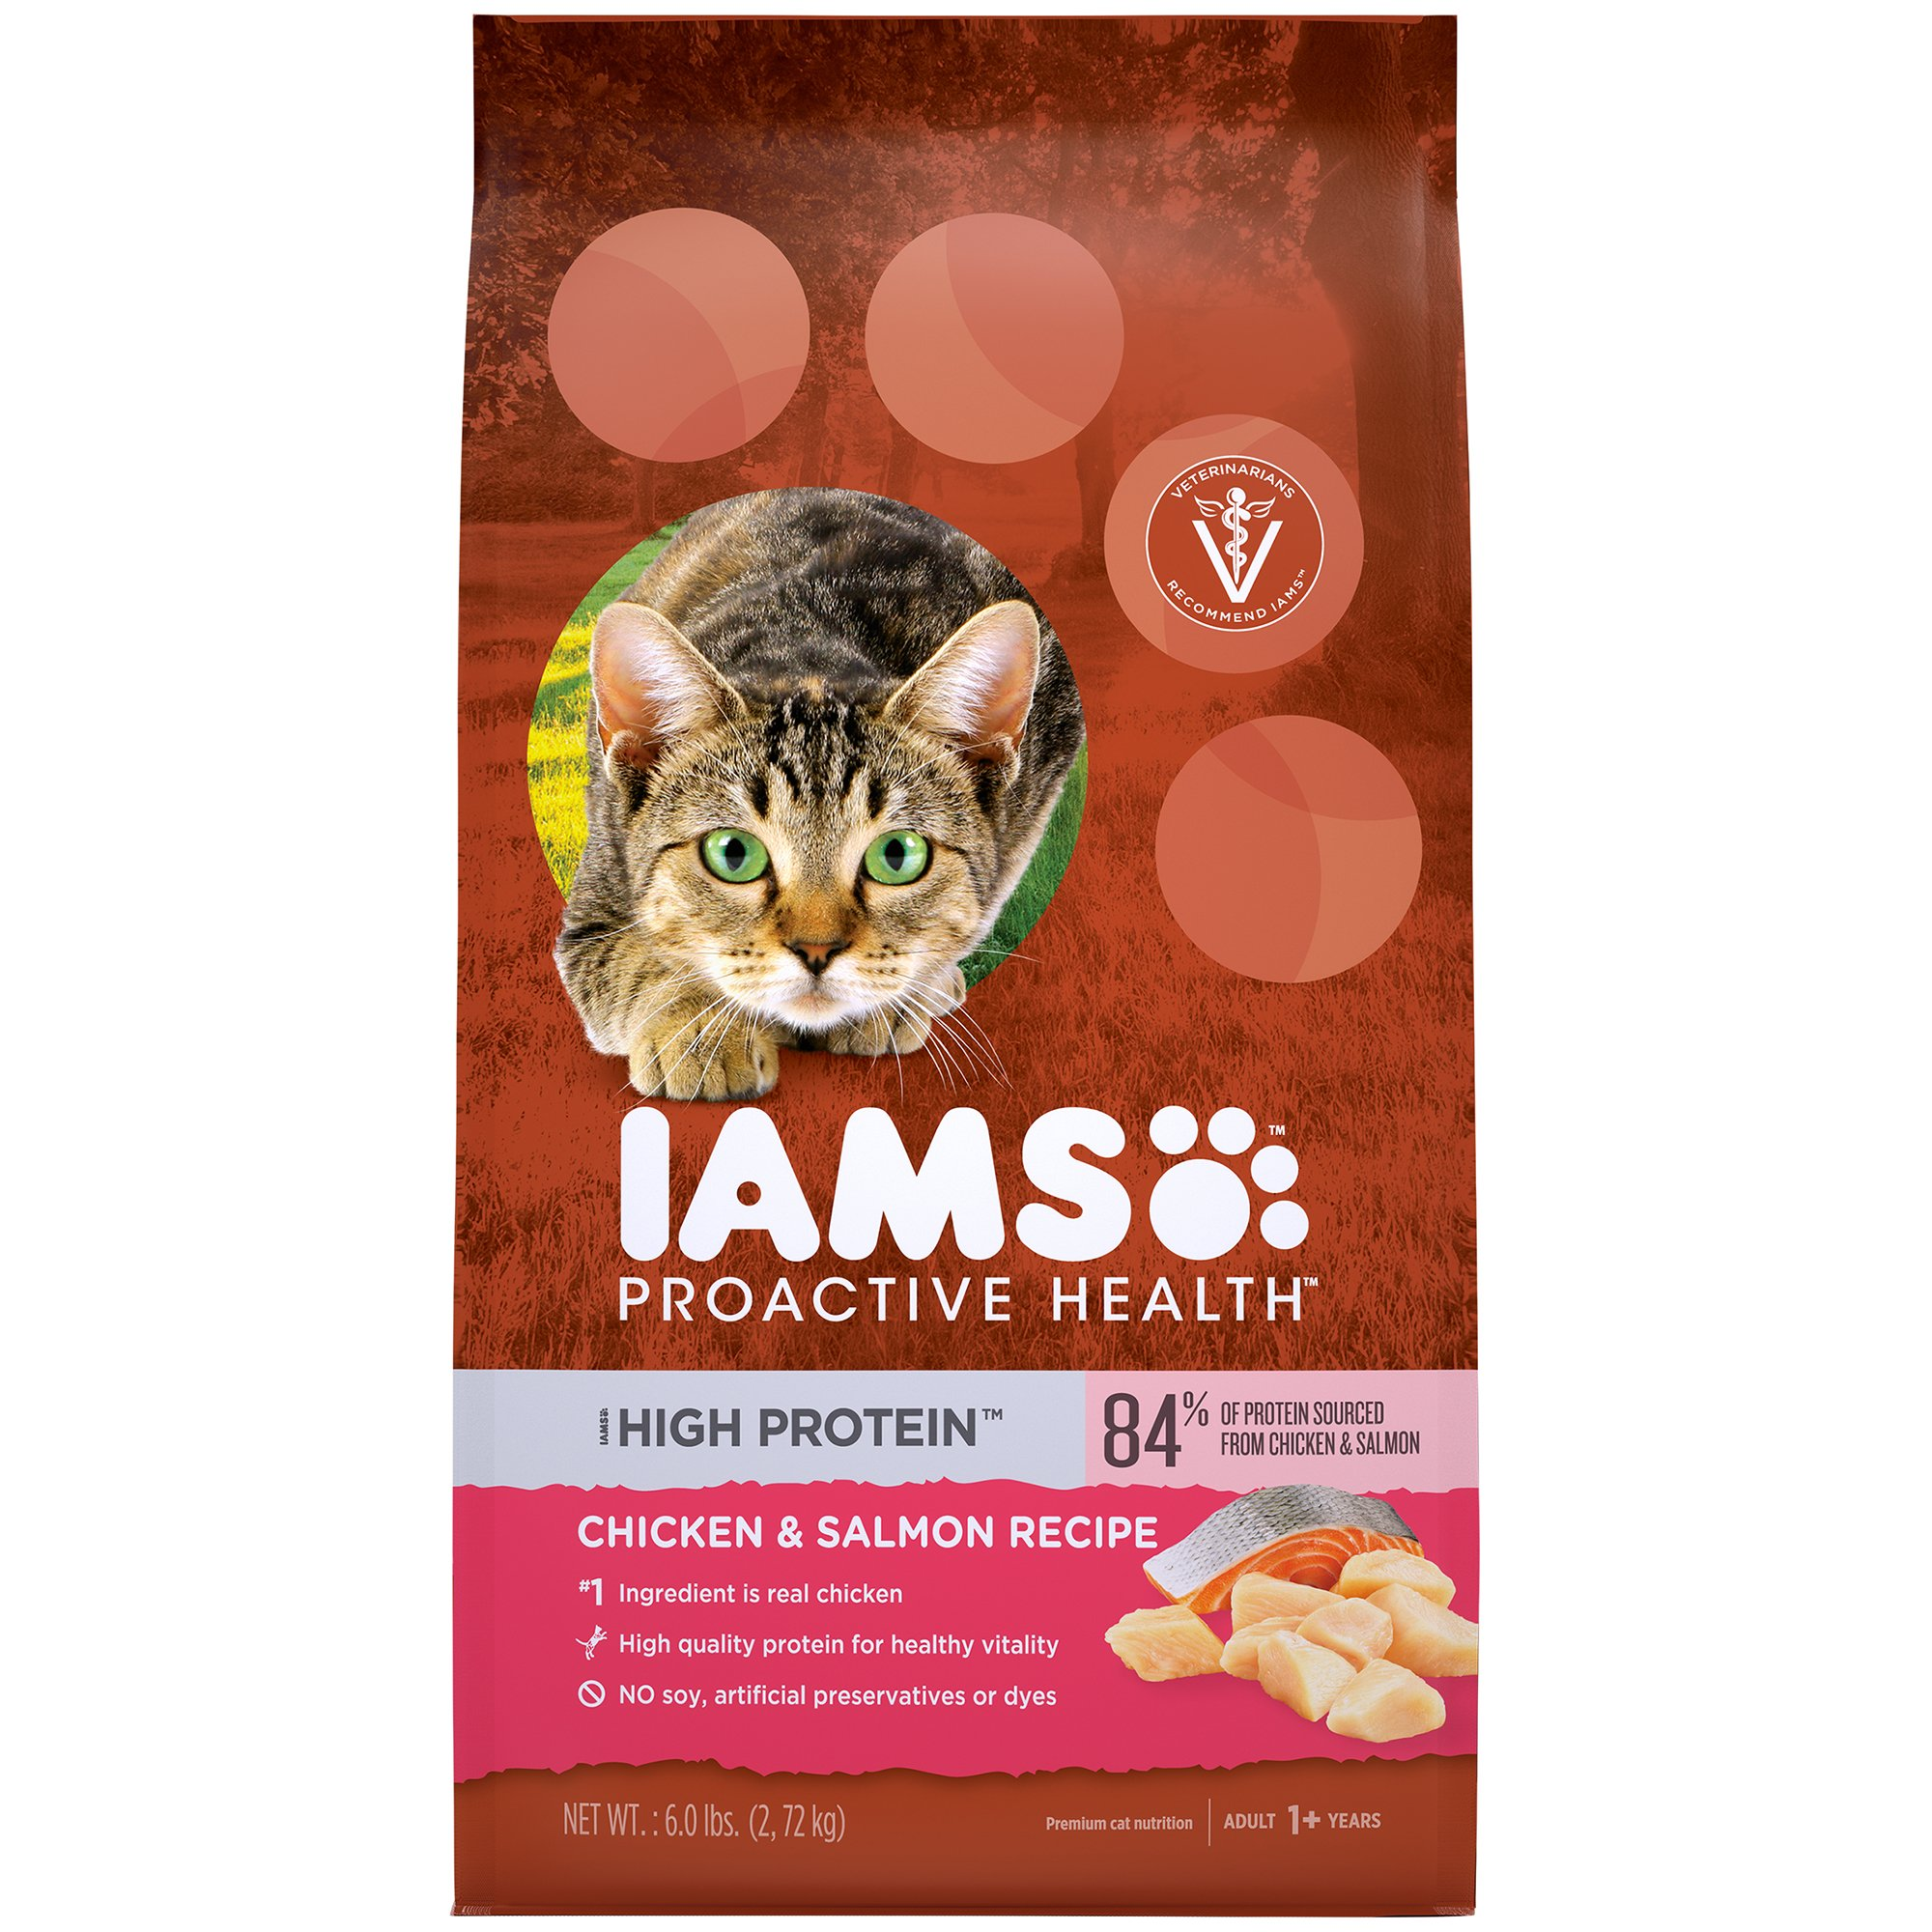 IAMS PROACTIVE HEALTH High Protein Adult Dry Cat Food with Chicken & Salmon, 6 Pound Bag